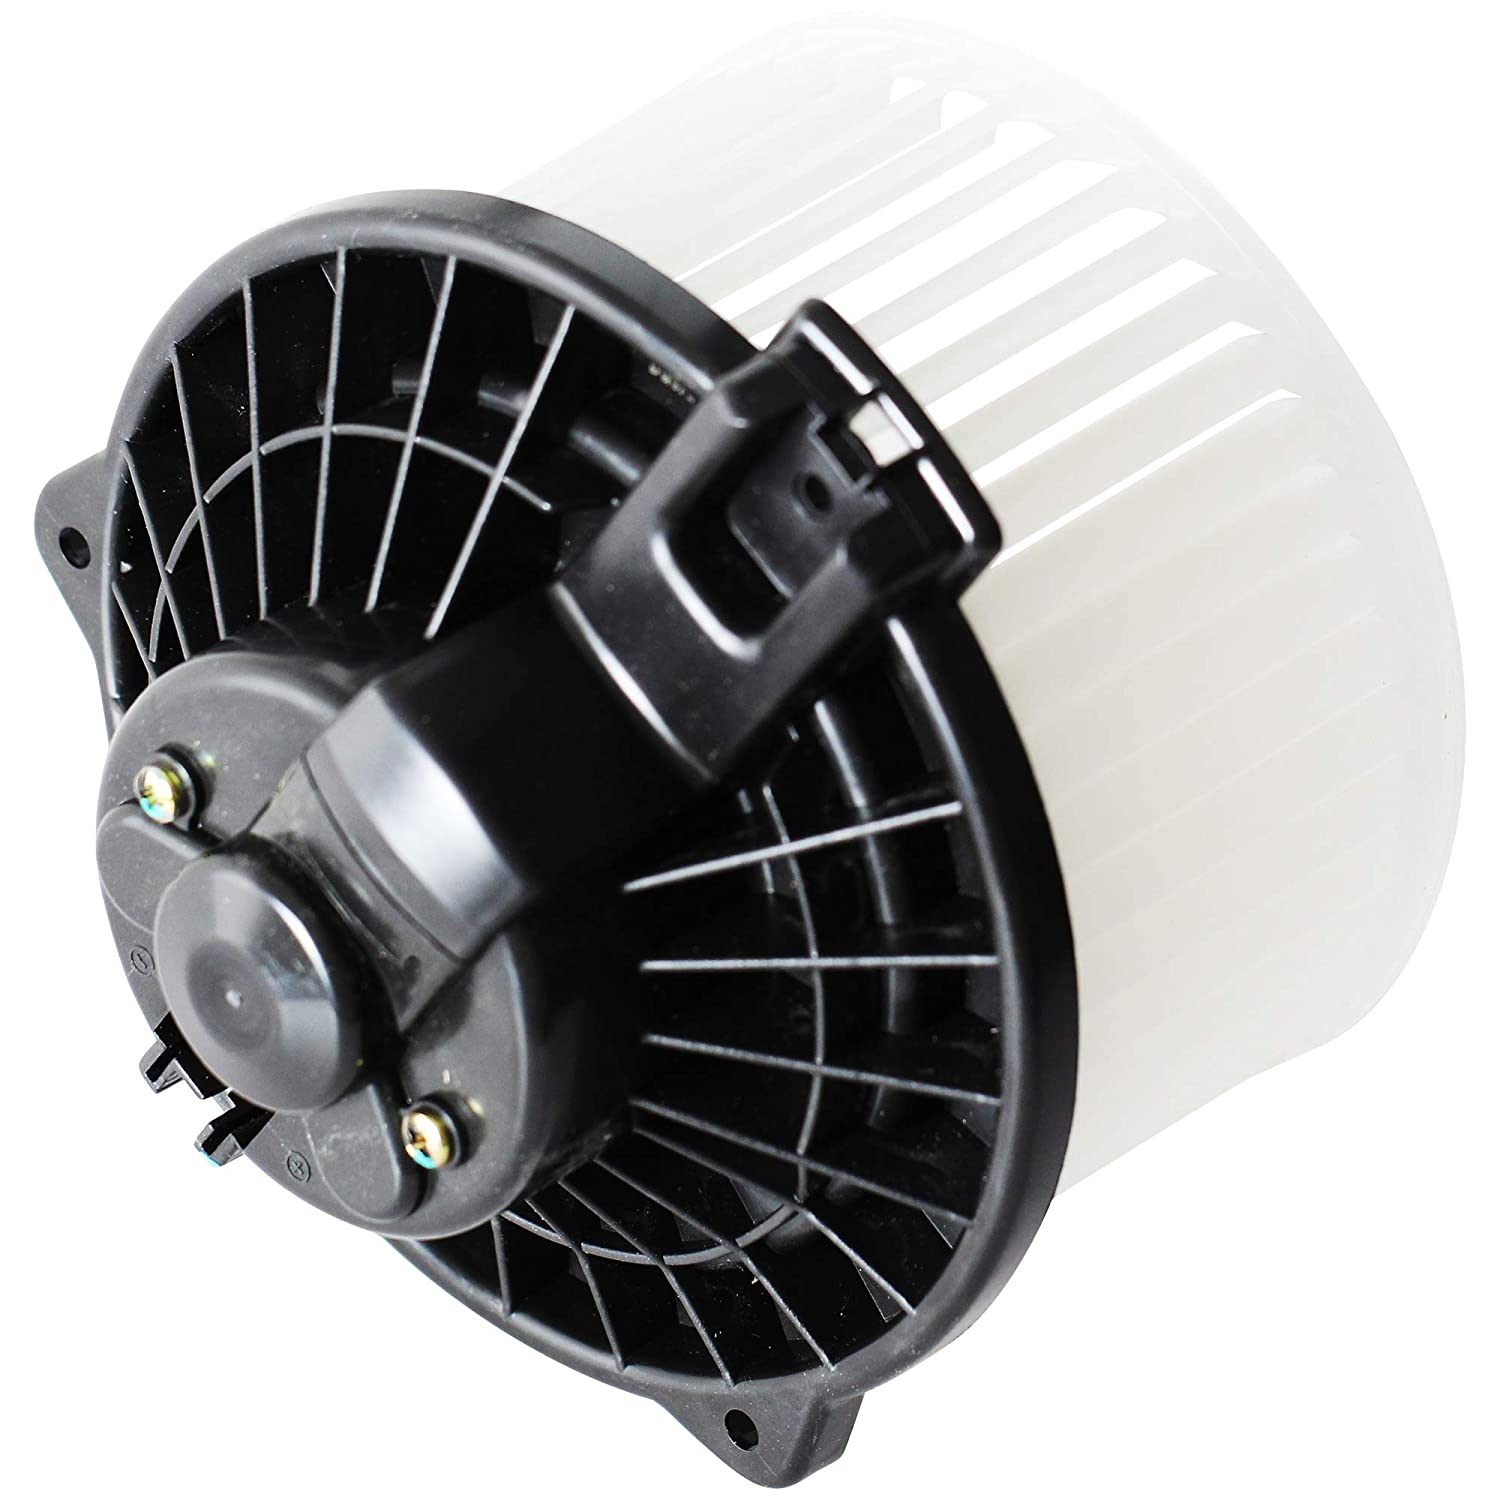 2003-2006 Toyota Tundra 87103-0C022 700063 BOXI HVAC Blower Motor Fan Assembly for 2001-2007 Toyota Sequoia